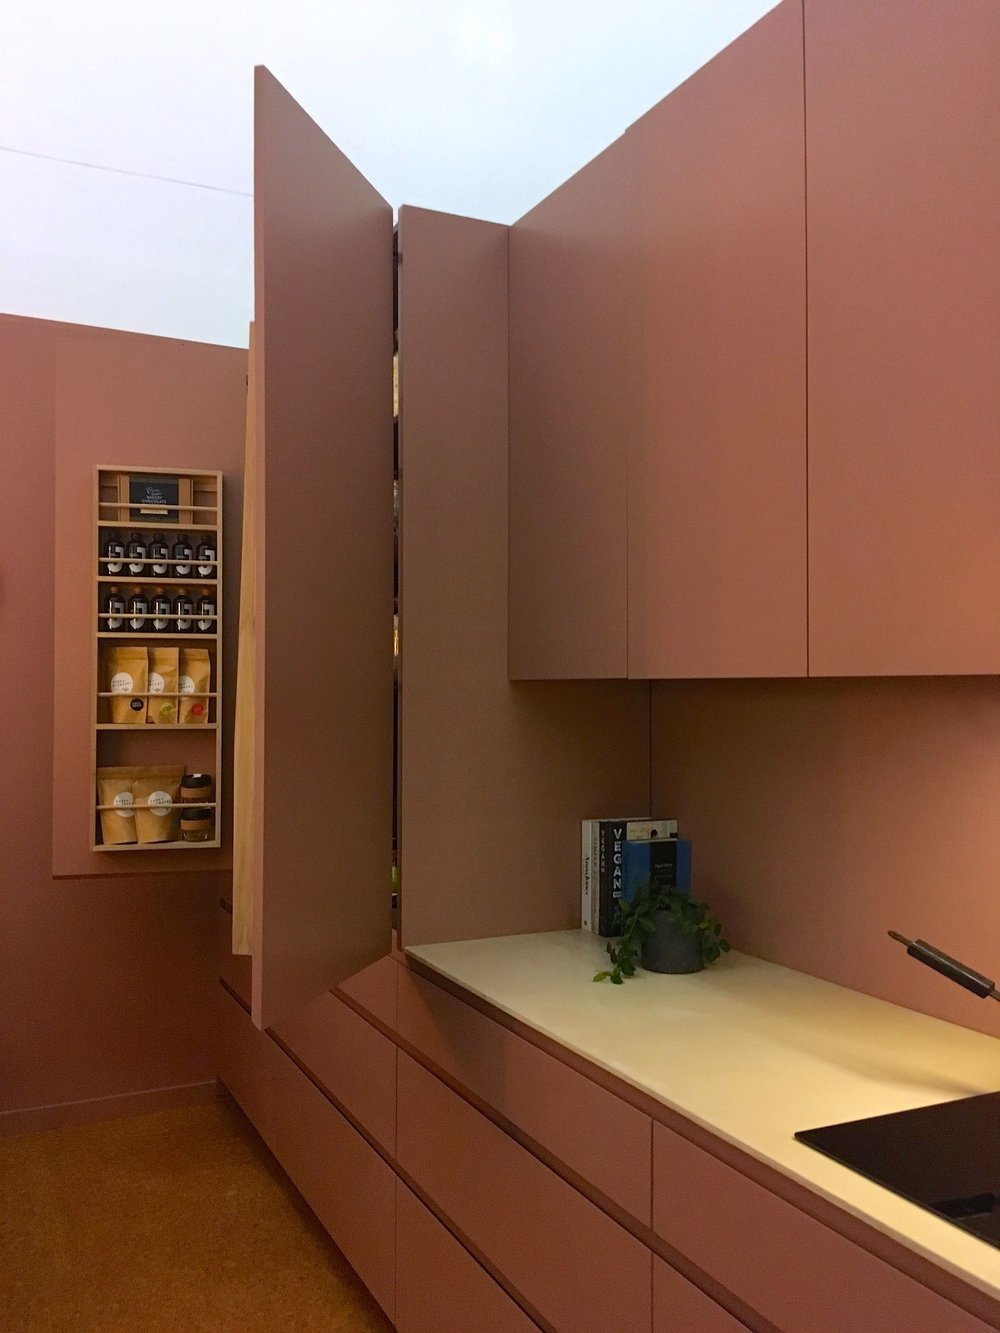 A single colour throughout - does that make the cupboards camouflaged?